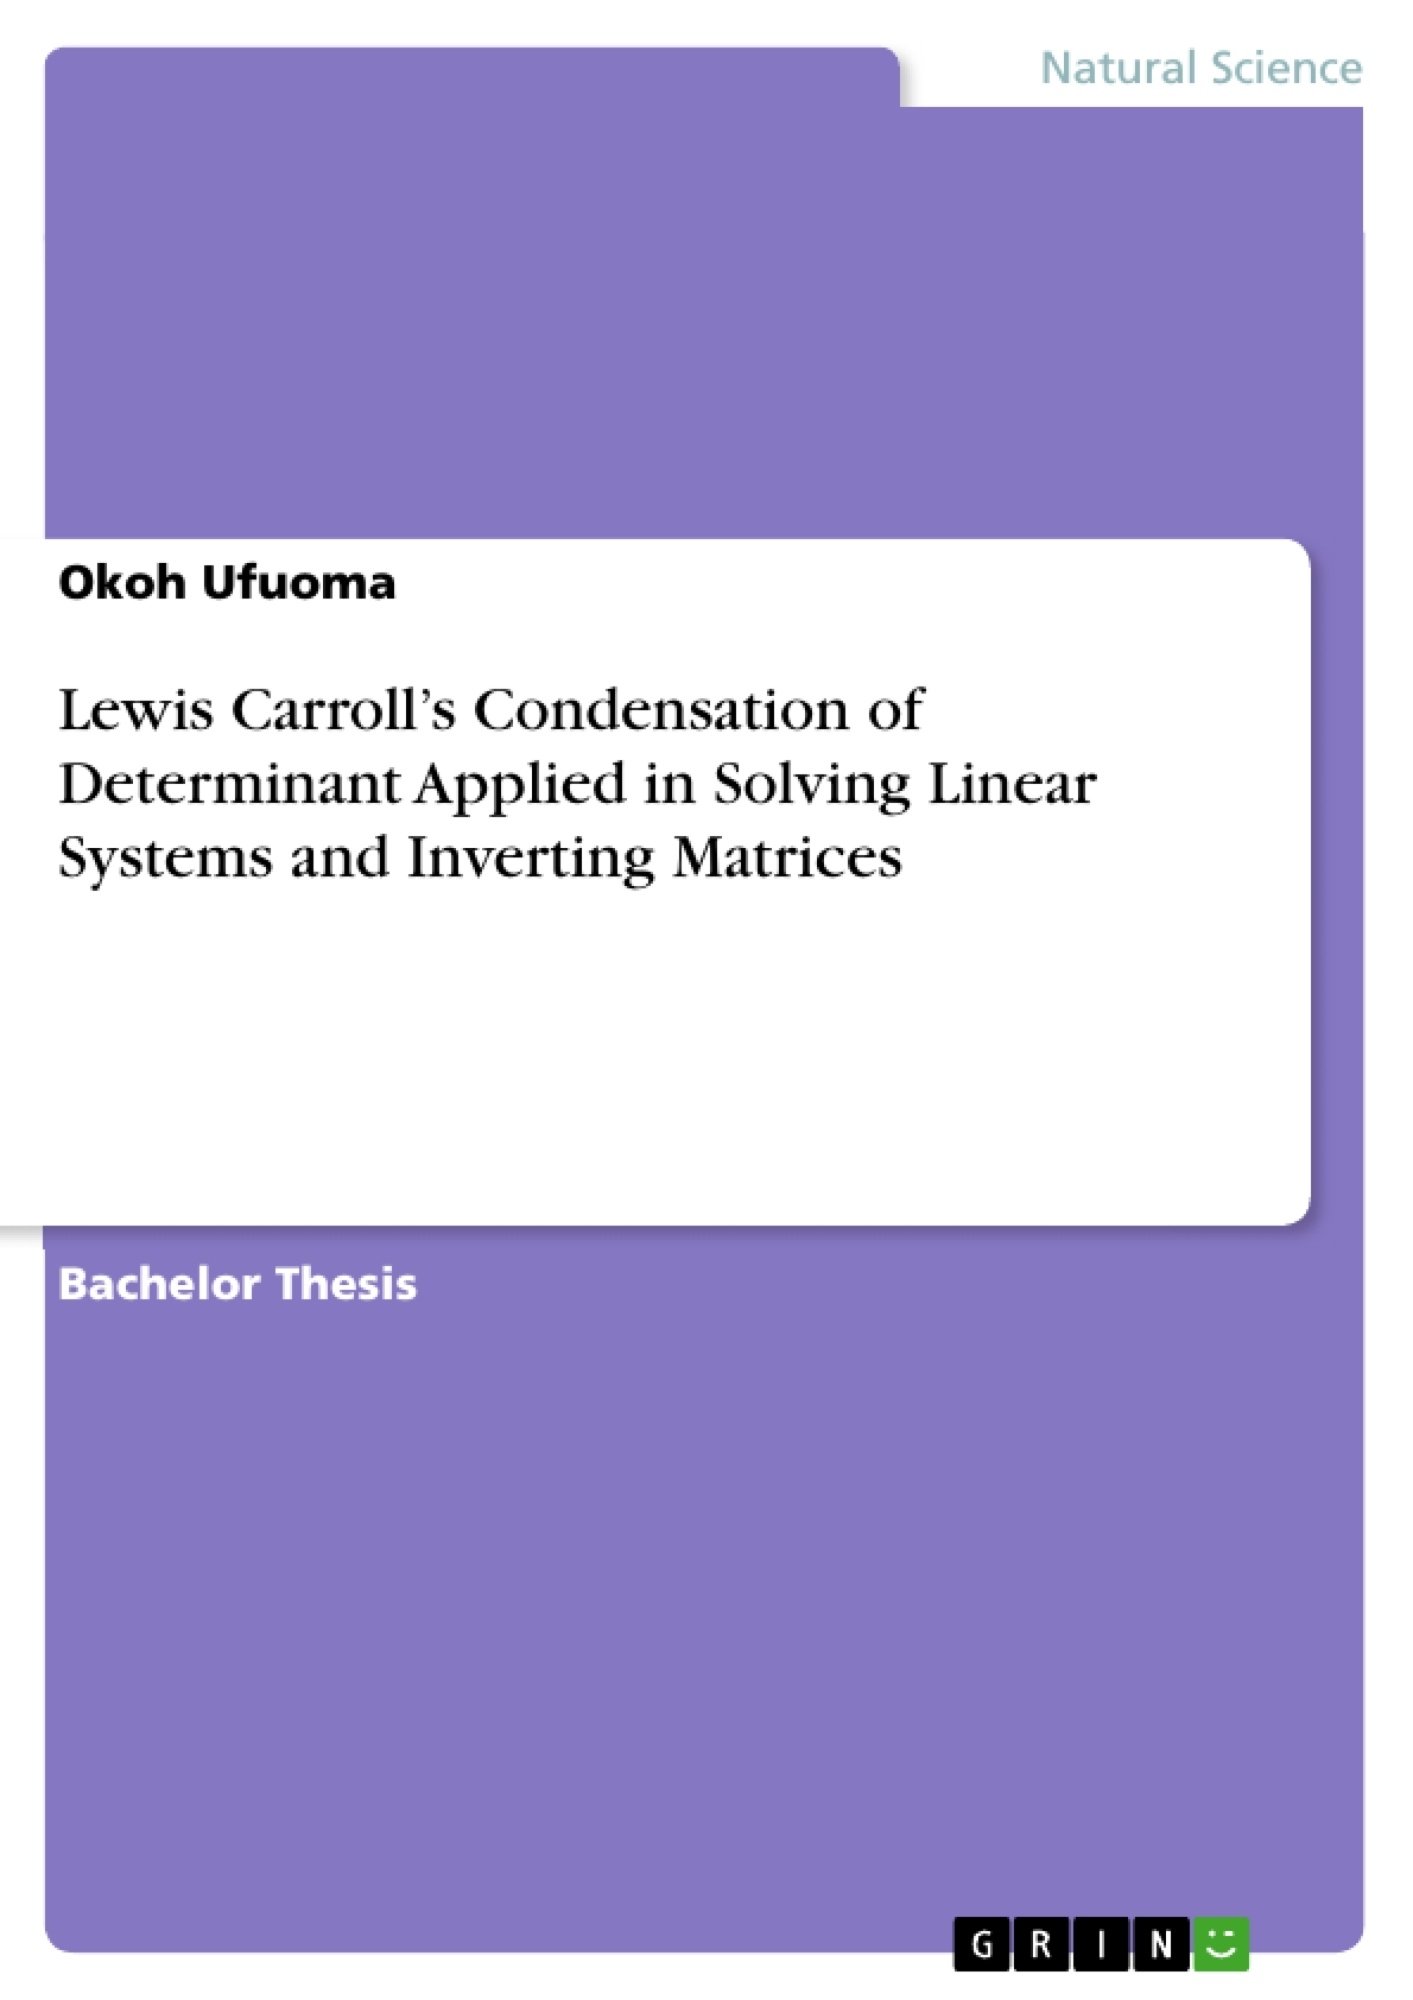 Title: Lewis Carroll's Condensation of Determinant Applied in Solving Linear Systems and Inverting Matrices